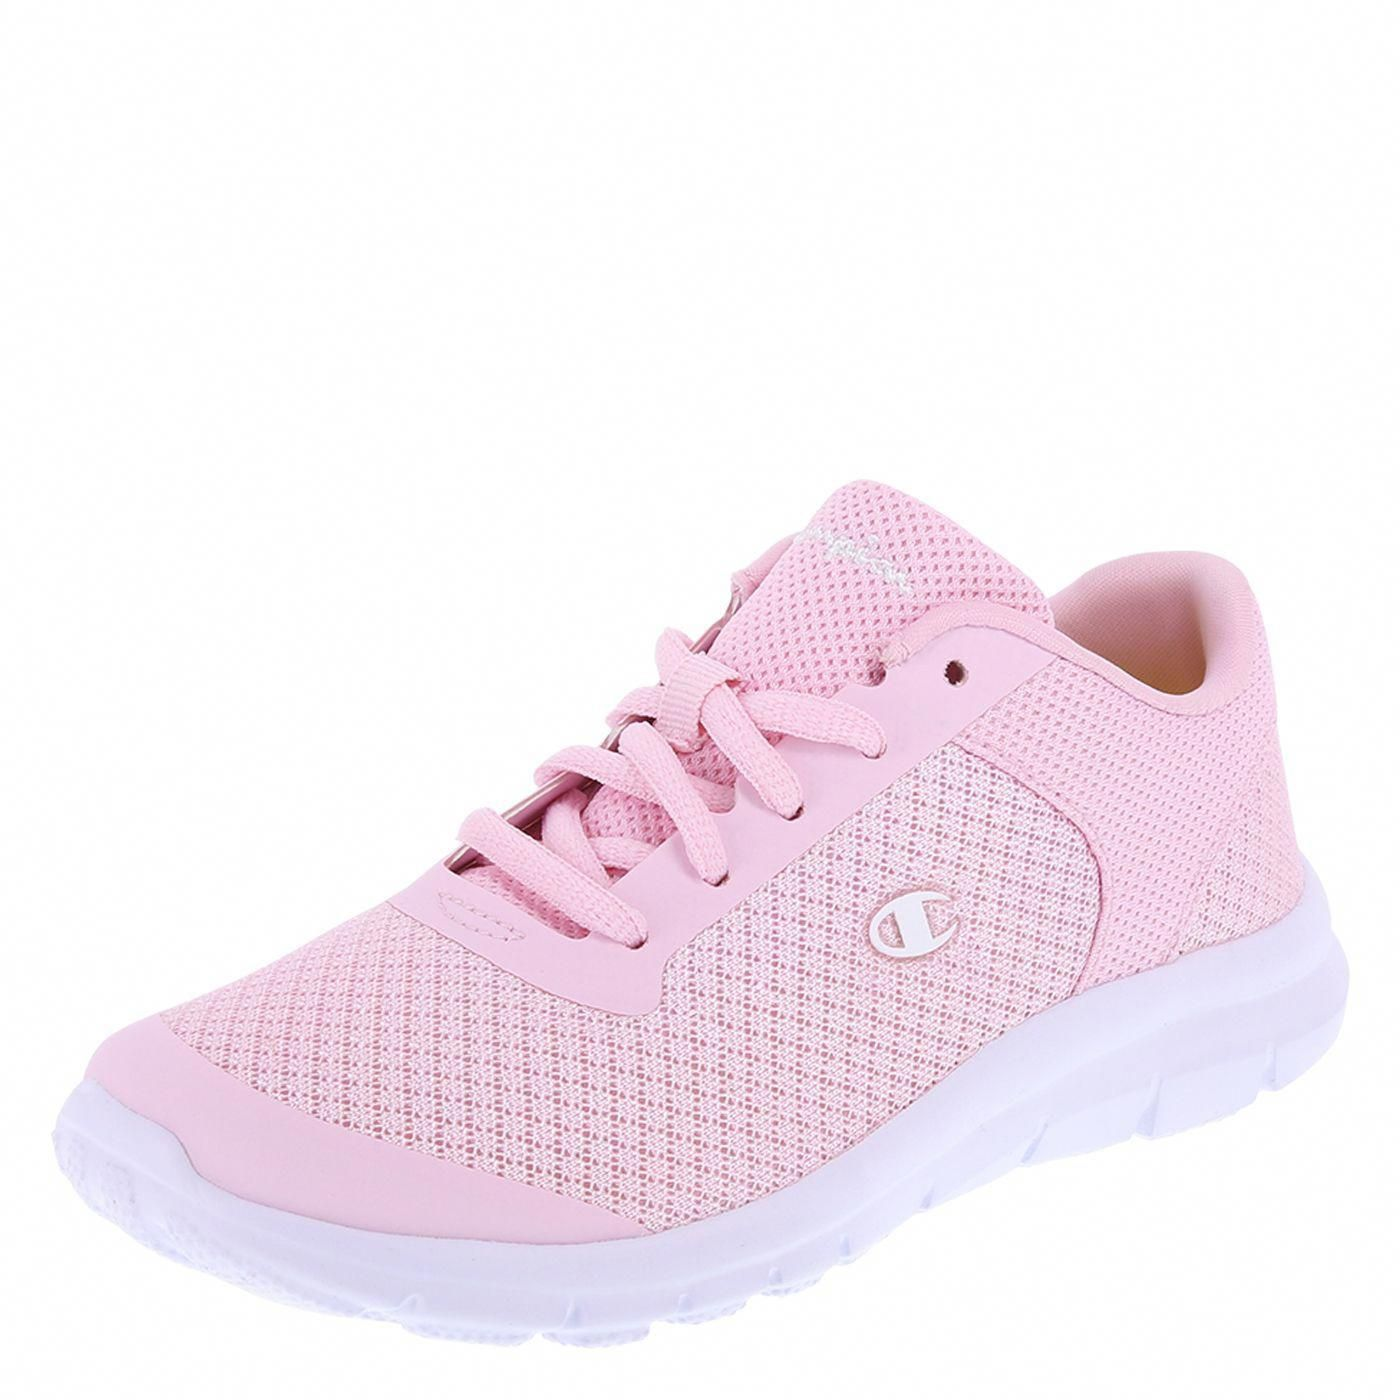 34a465419dad89 Champion Performance Girls Trainer Shoe